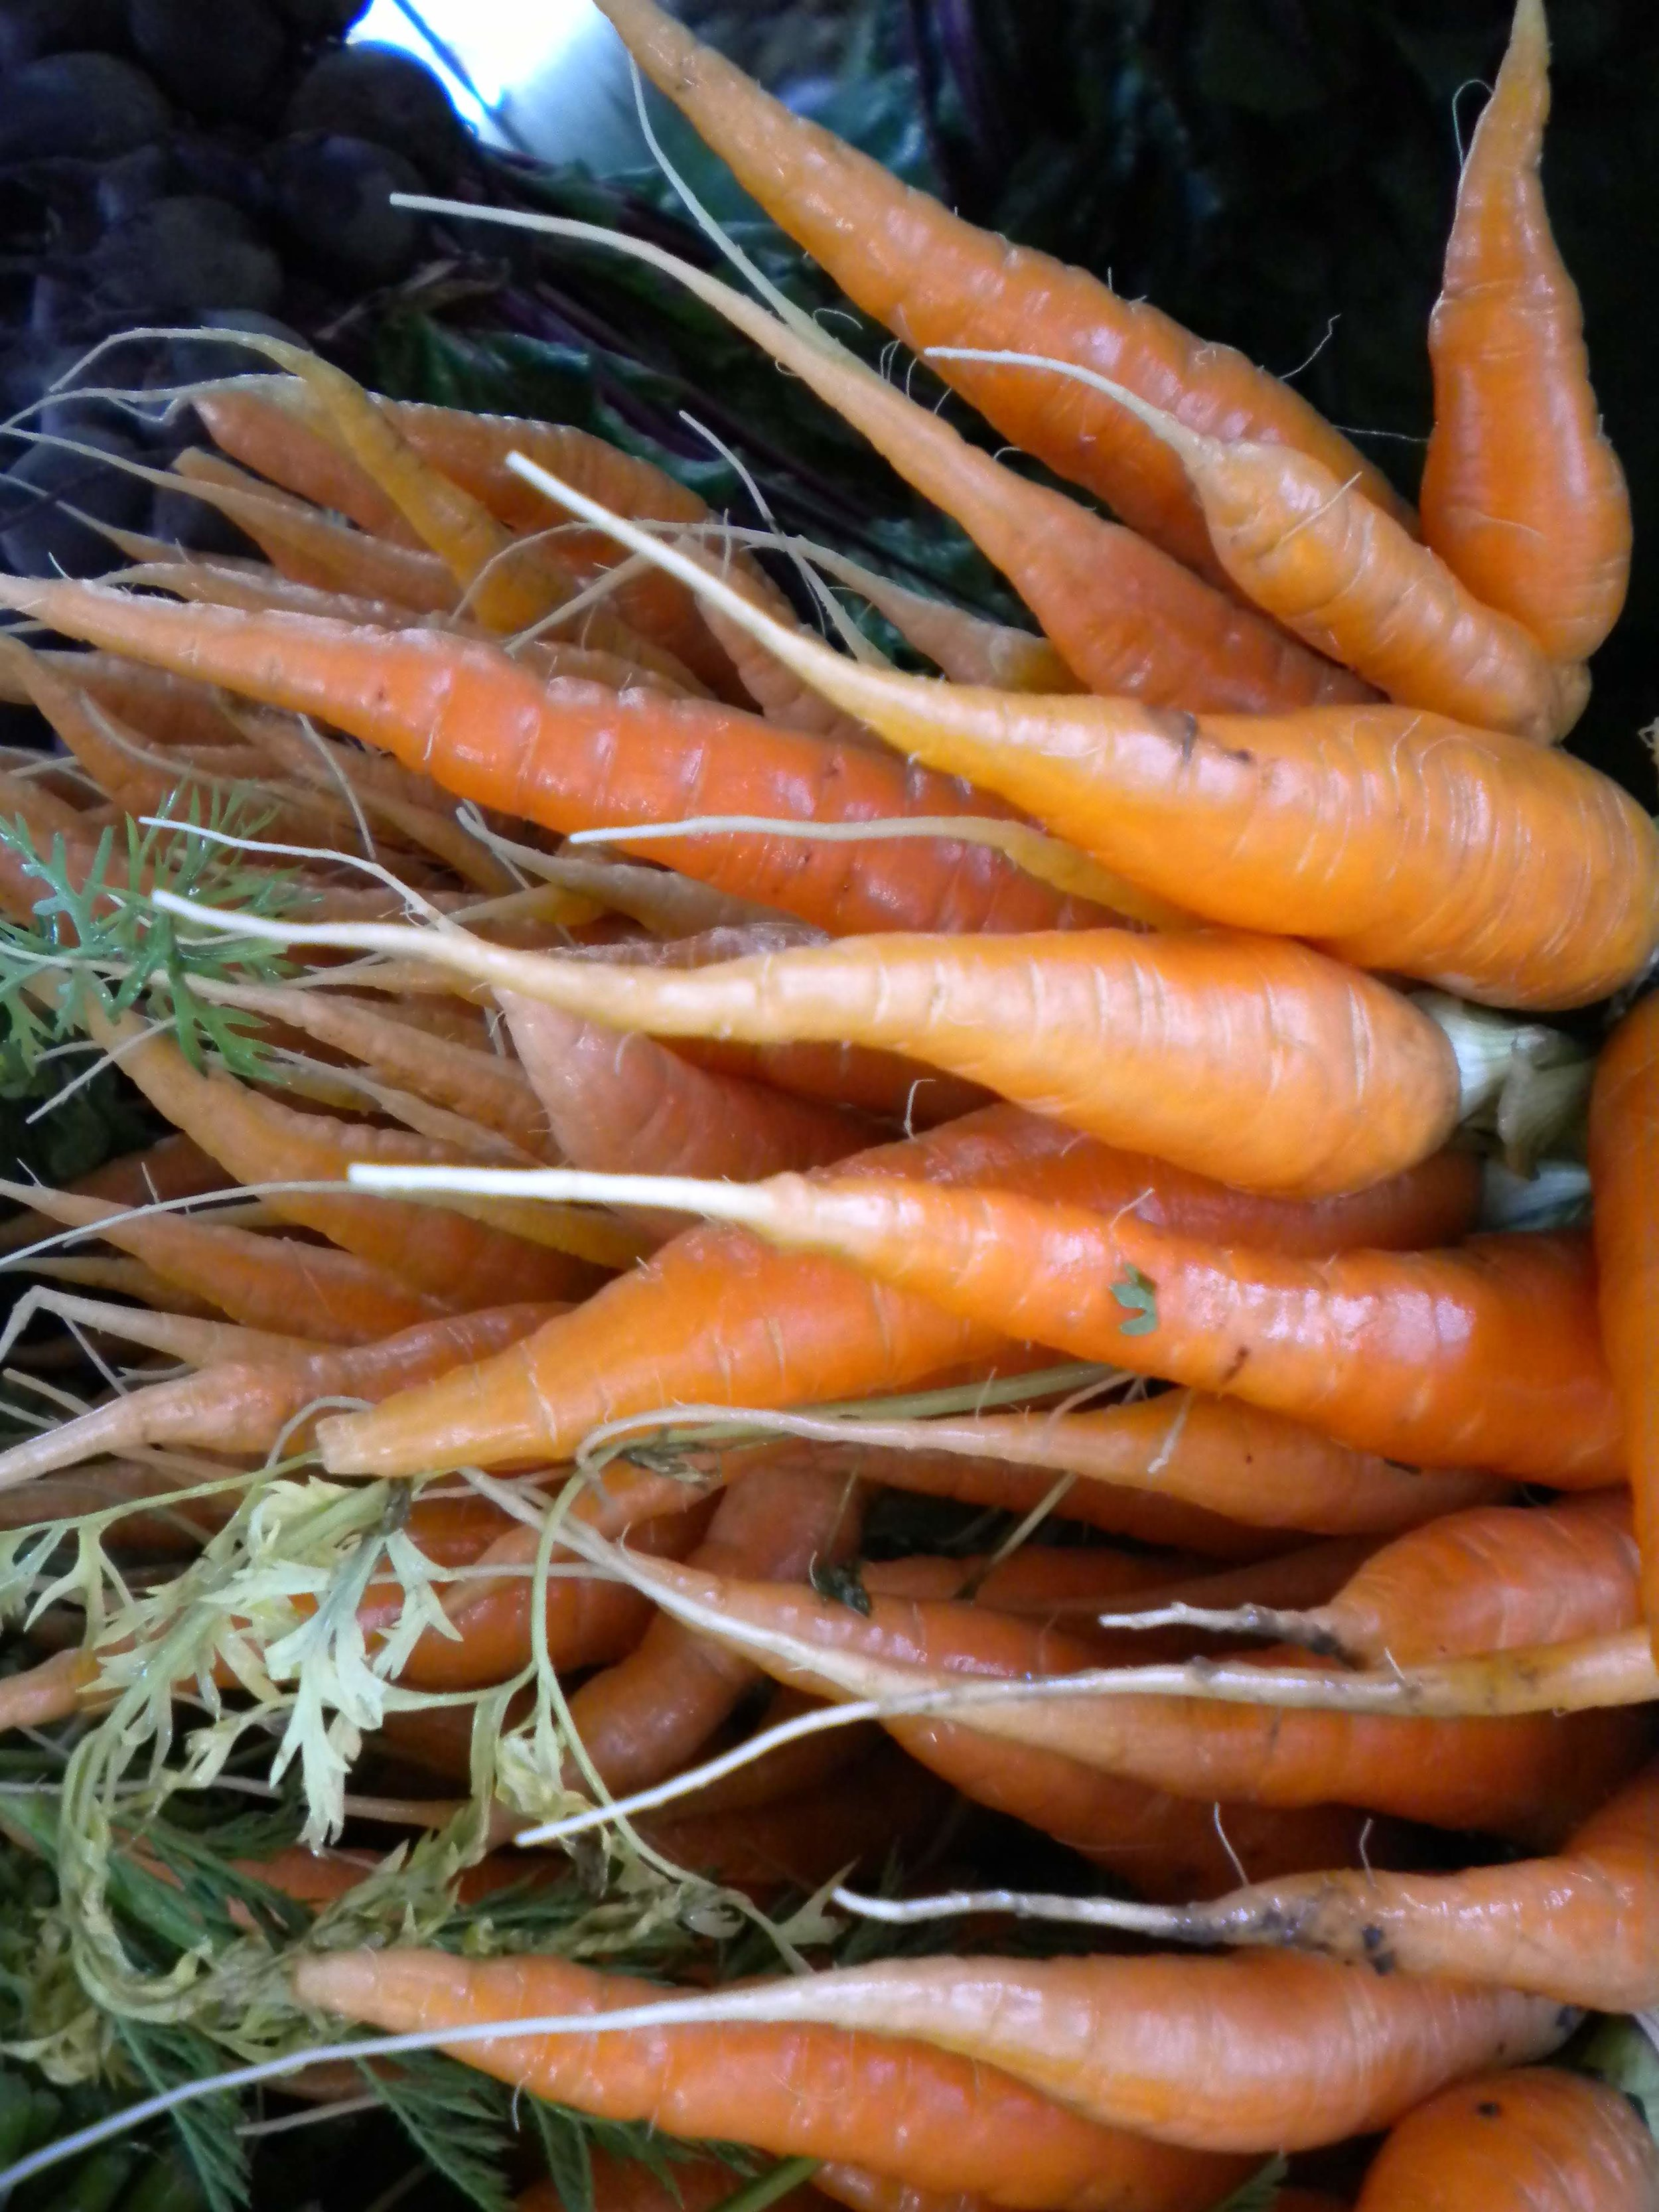 Carrots just picked